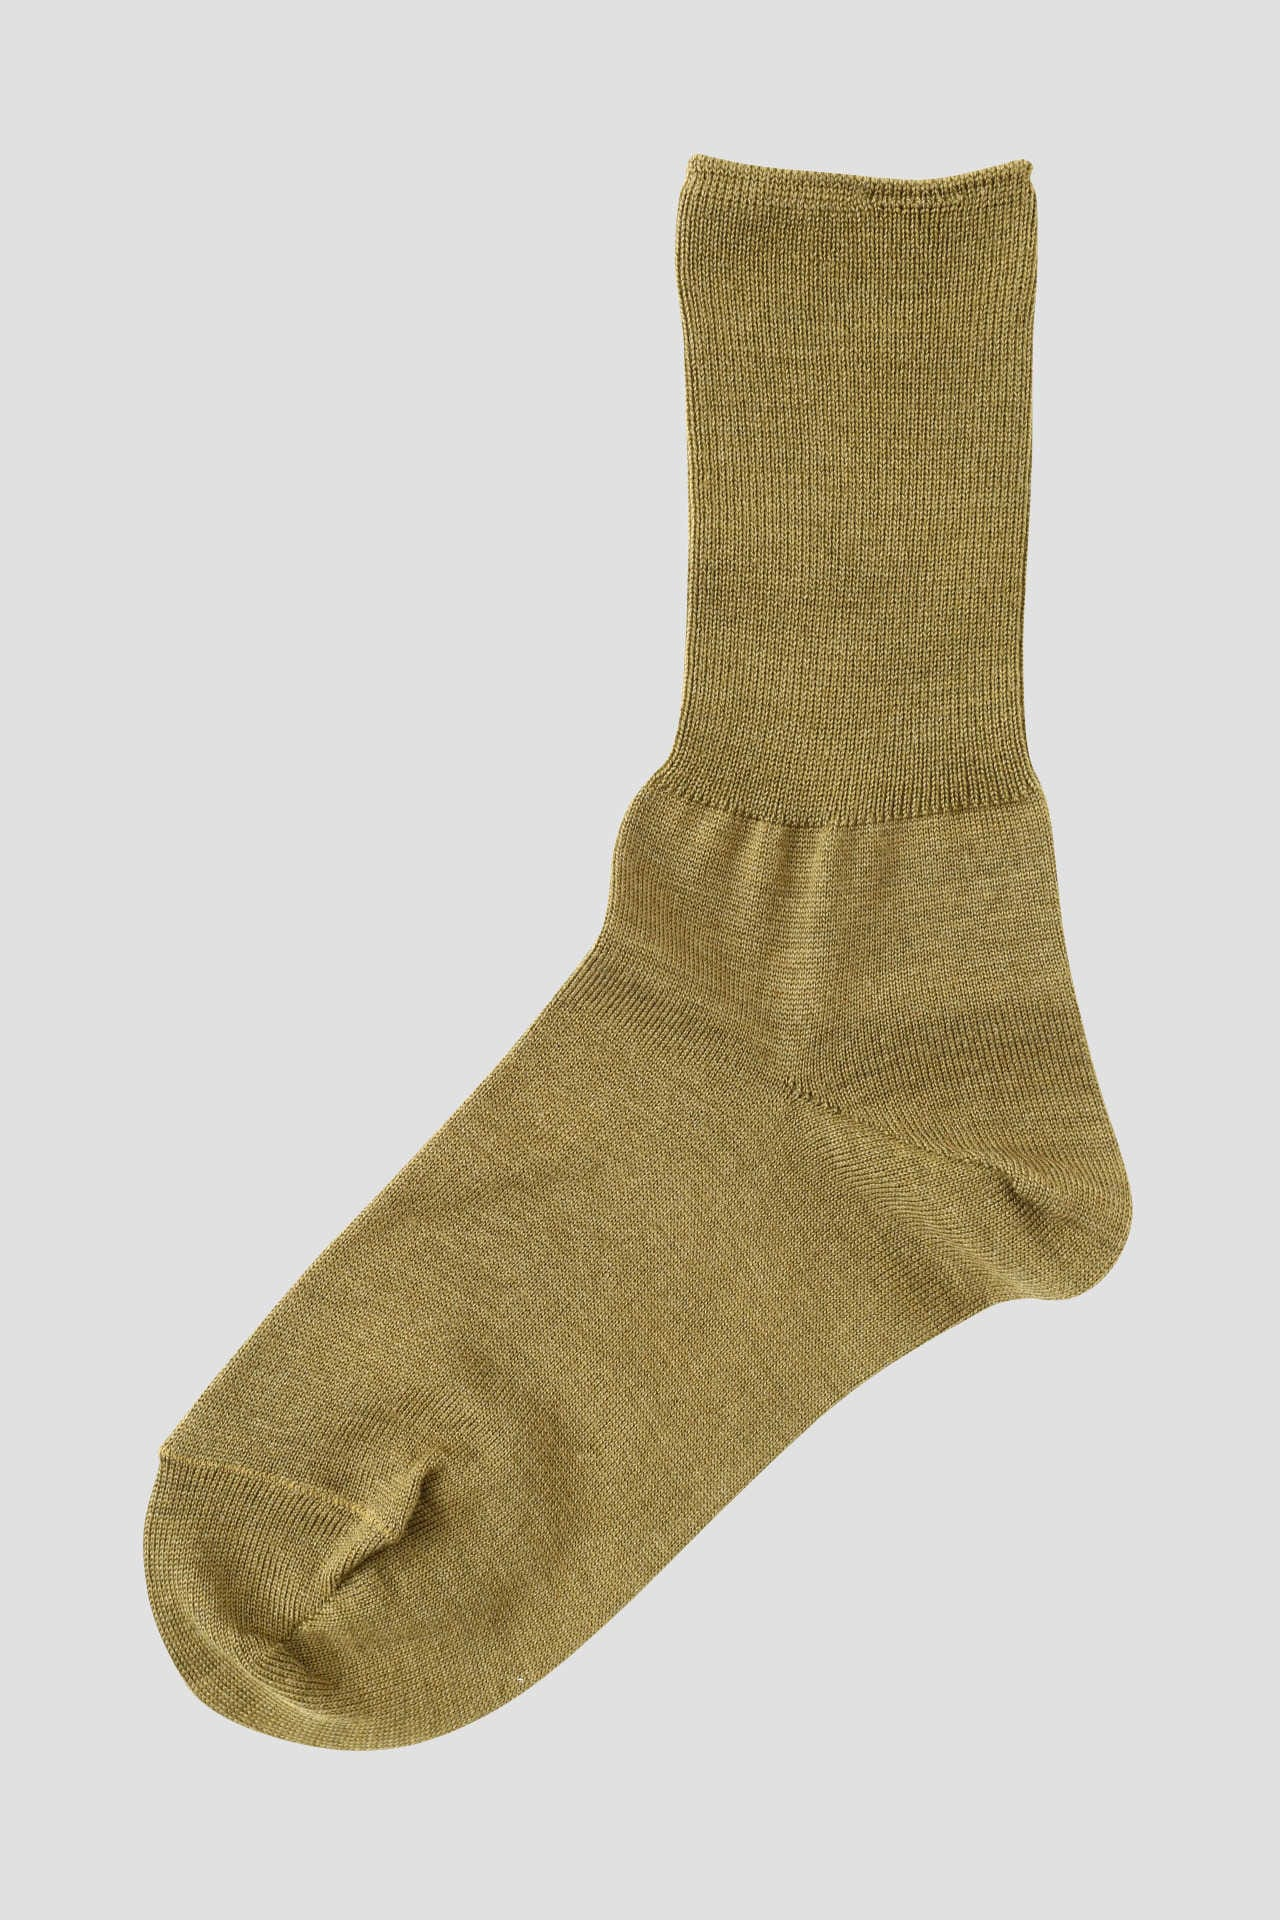 WOOL CASHMERE SILK SOCK6